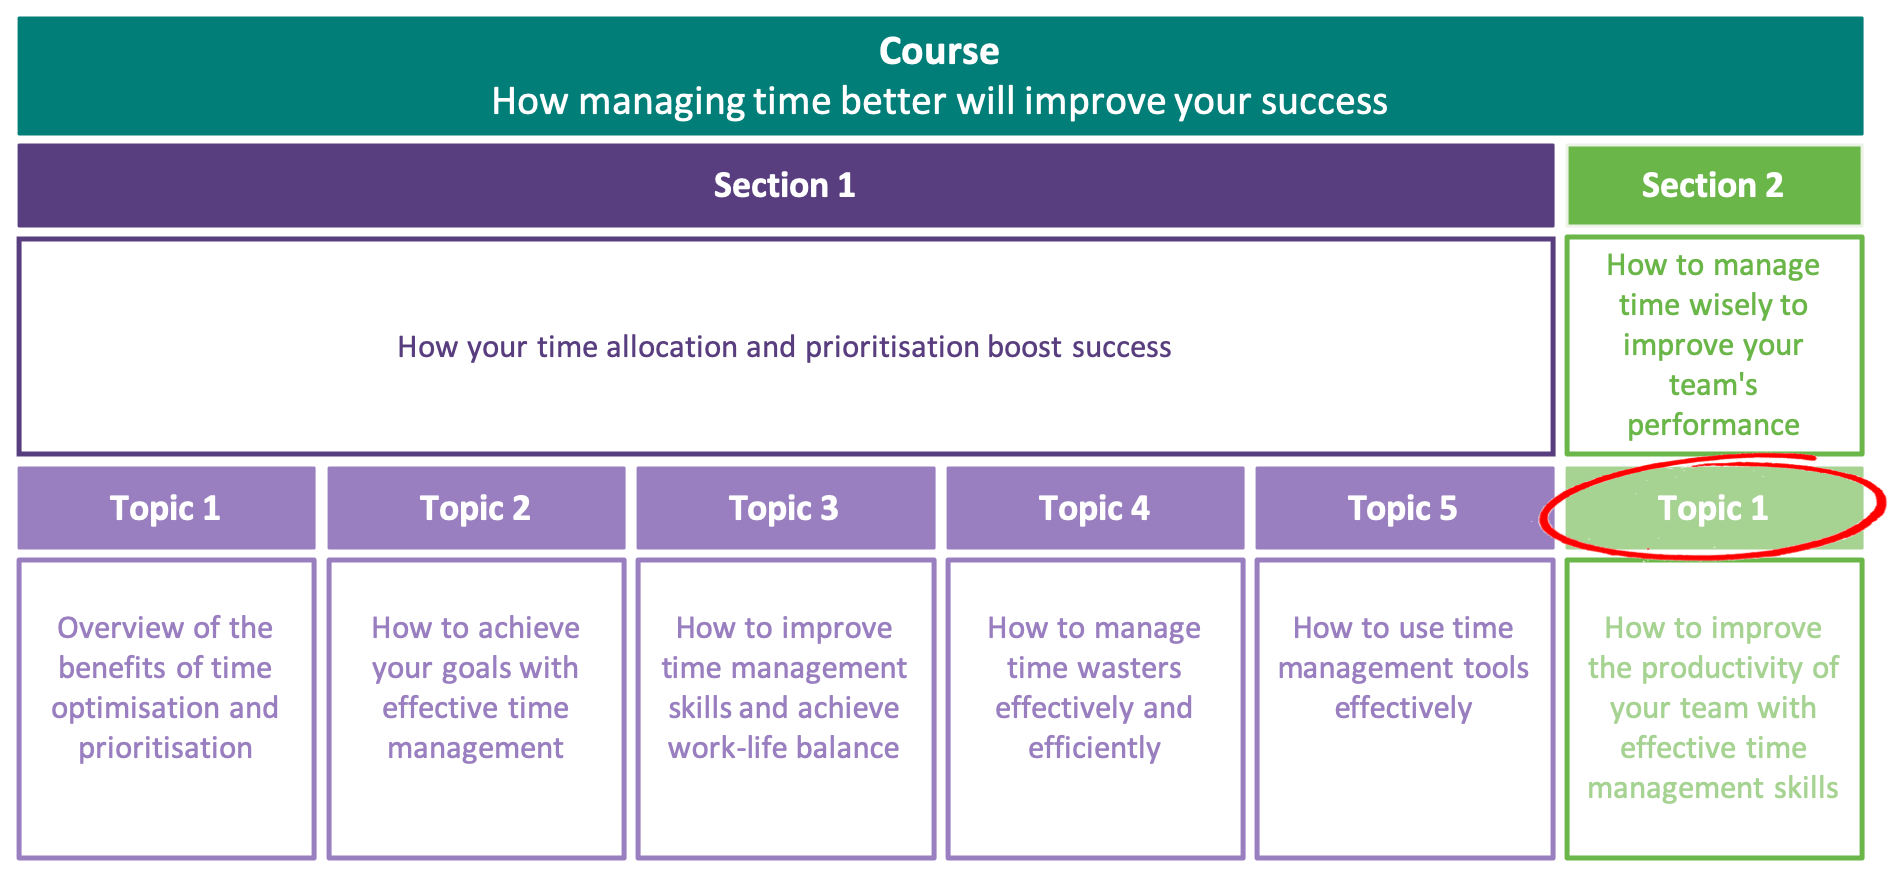 How to improve the productivity of your team with effective time management skills